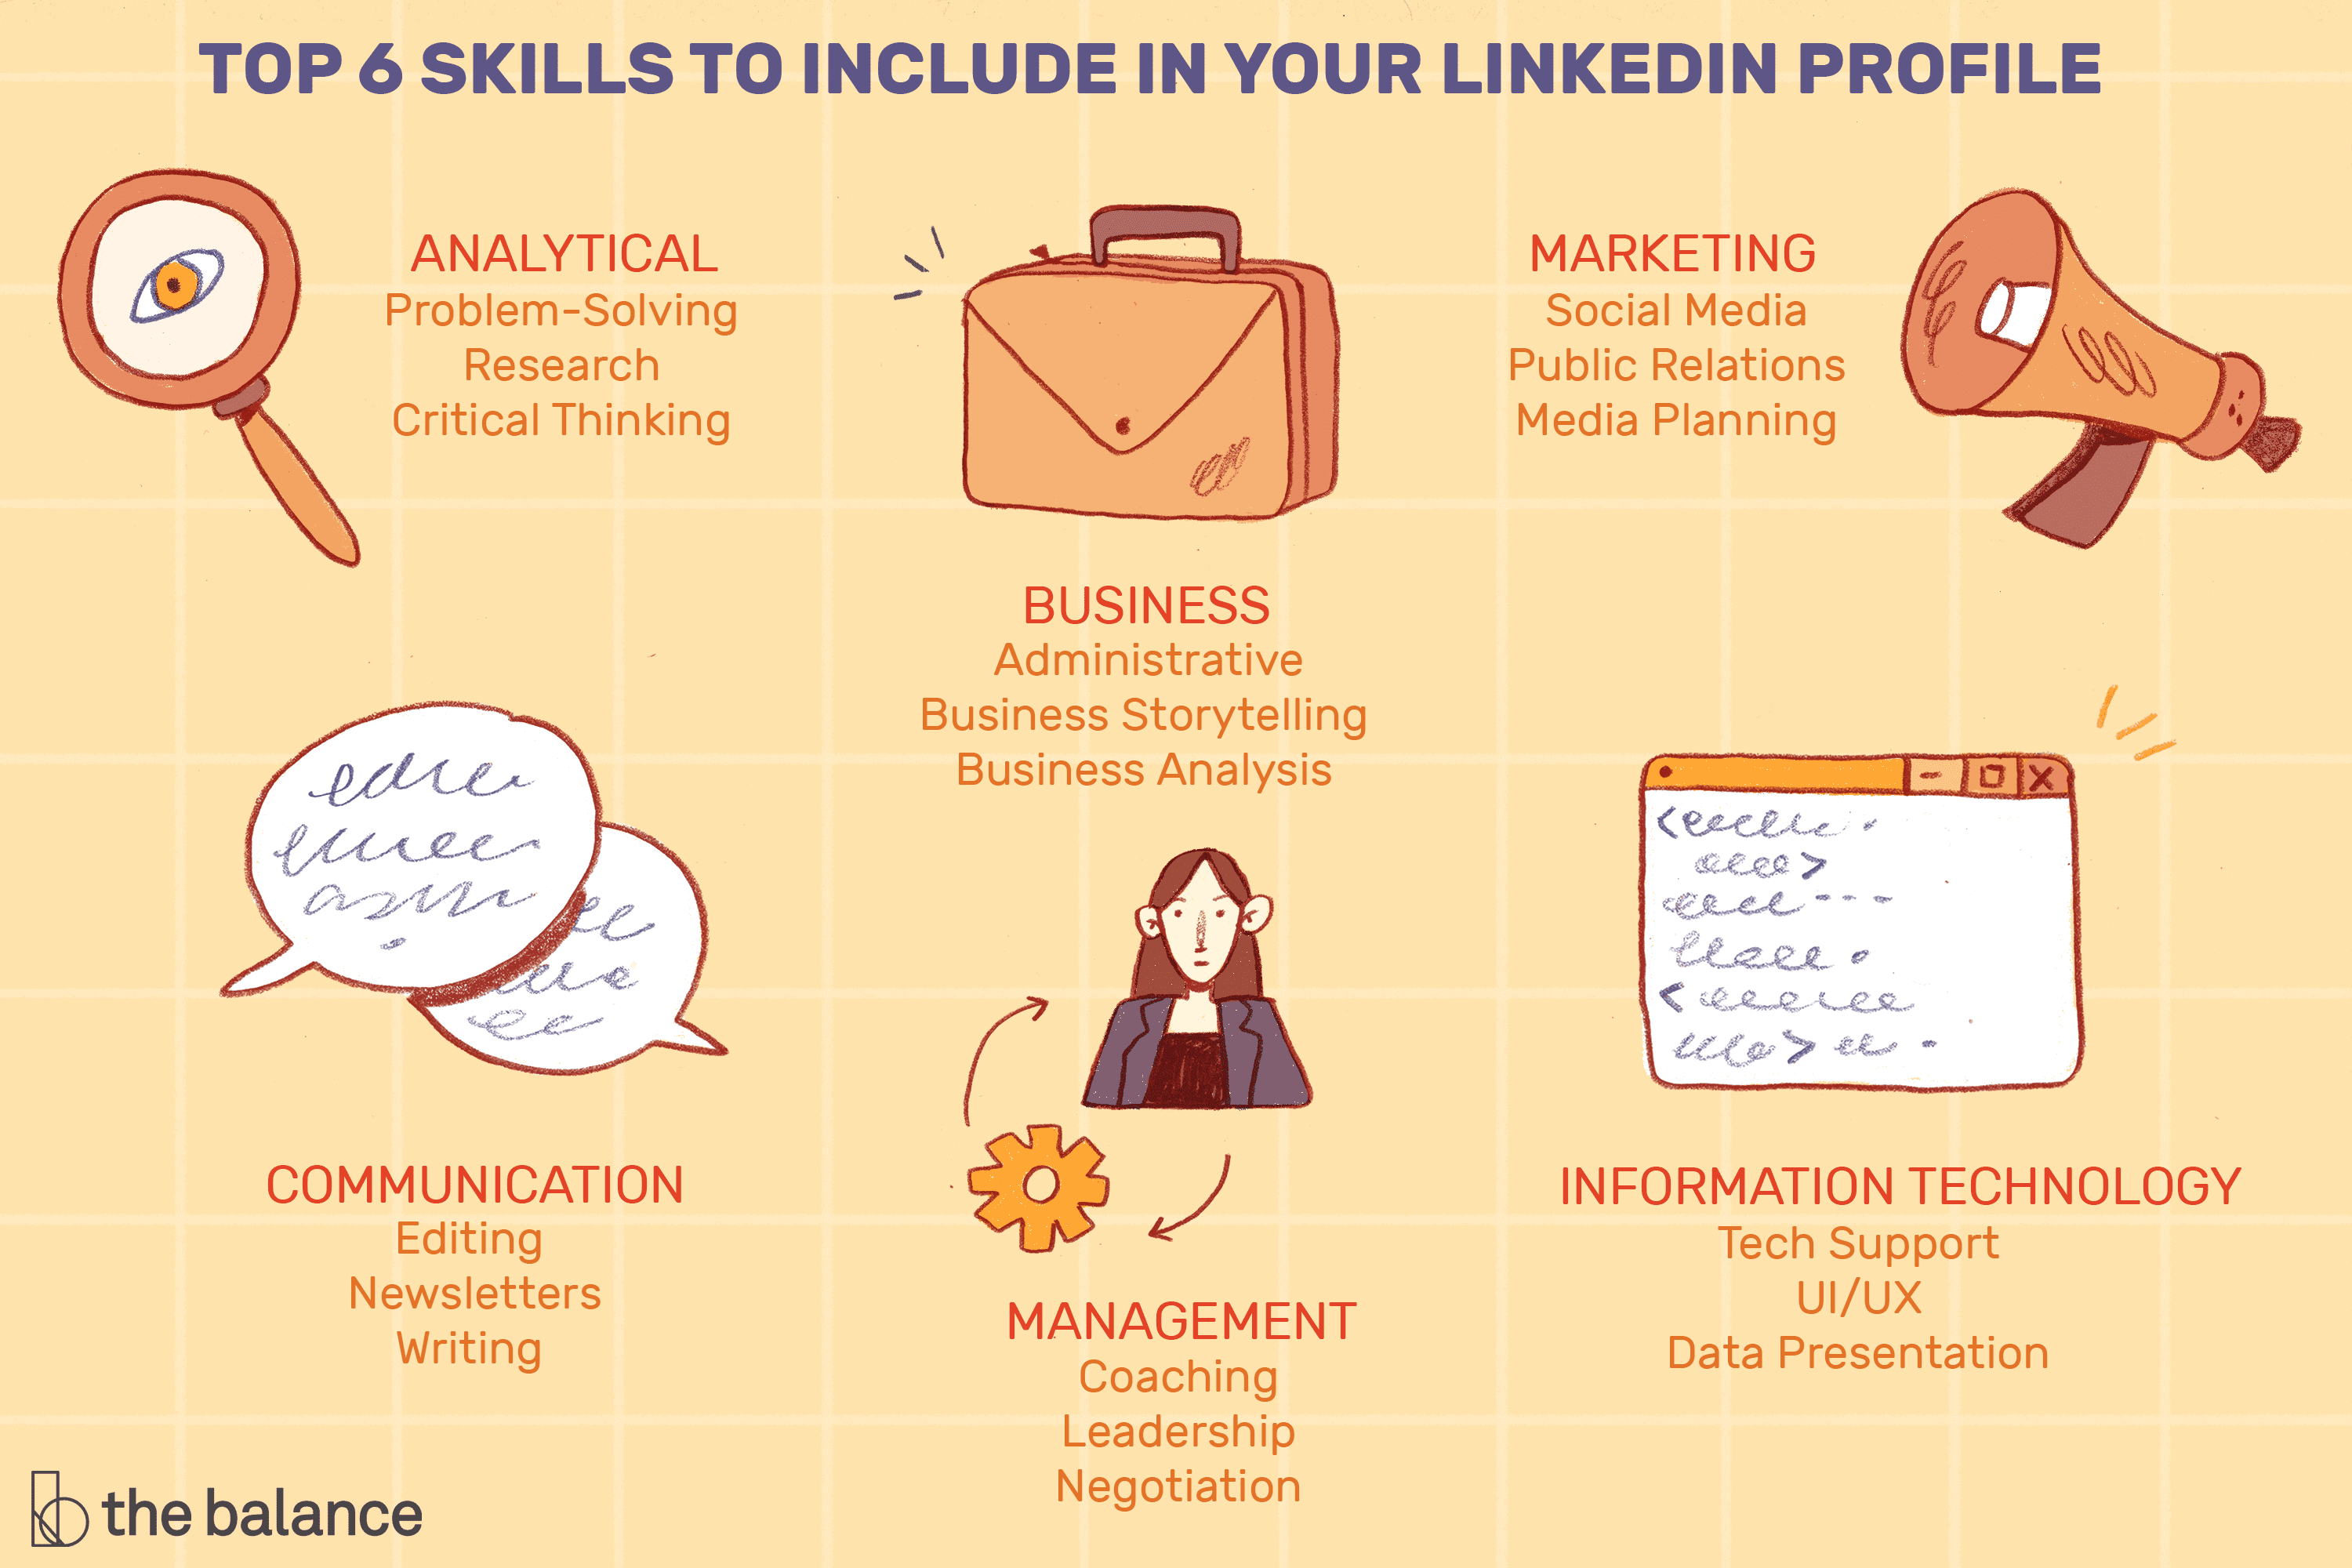 Top Skills To Include In Your LinkedIn Profile